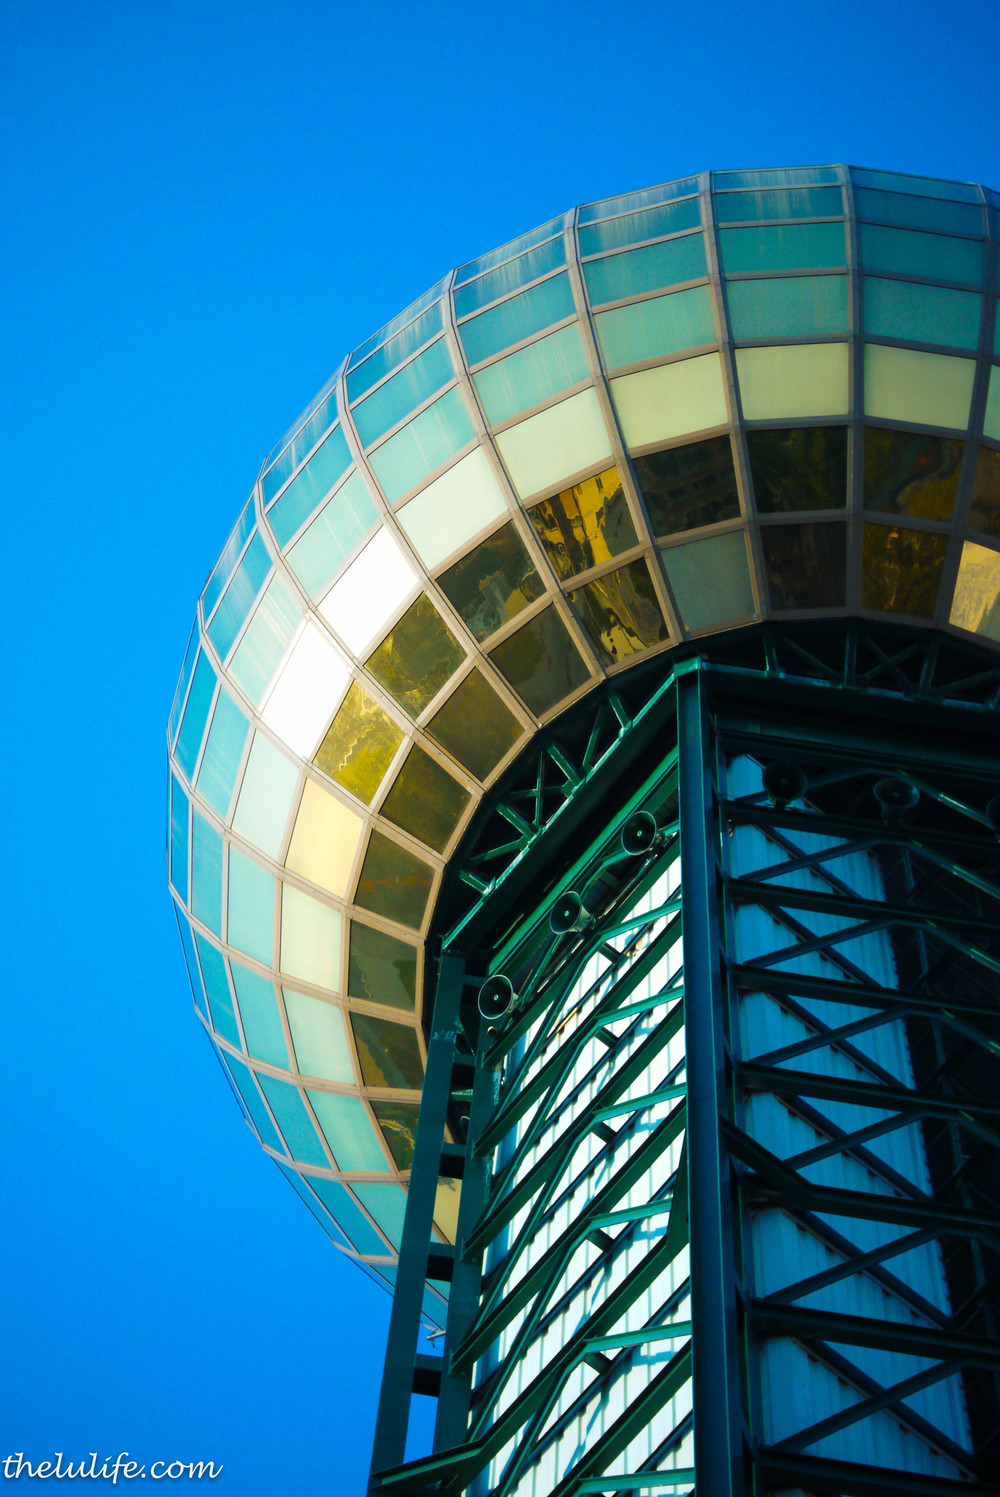 Figure 1. Sunsphere